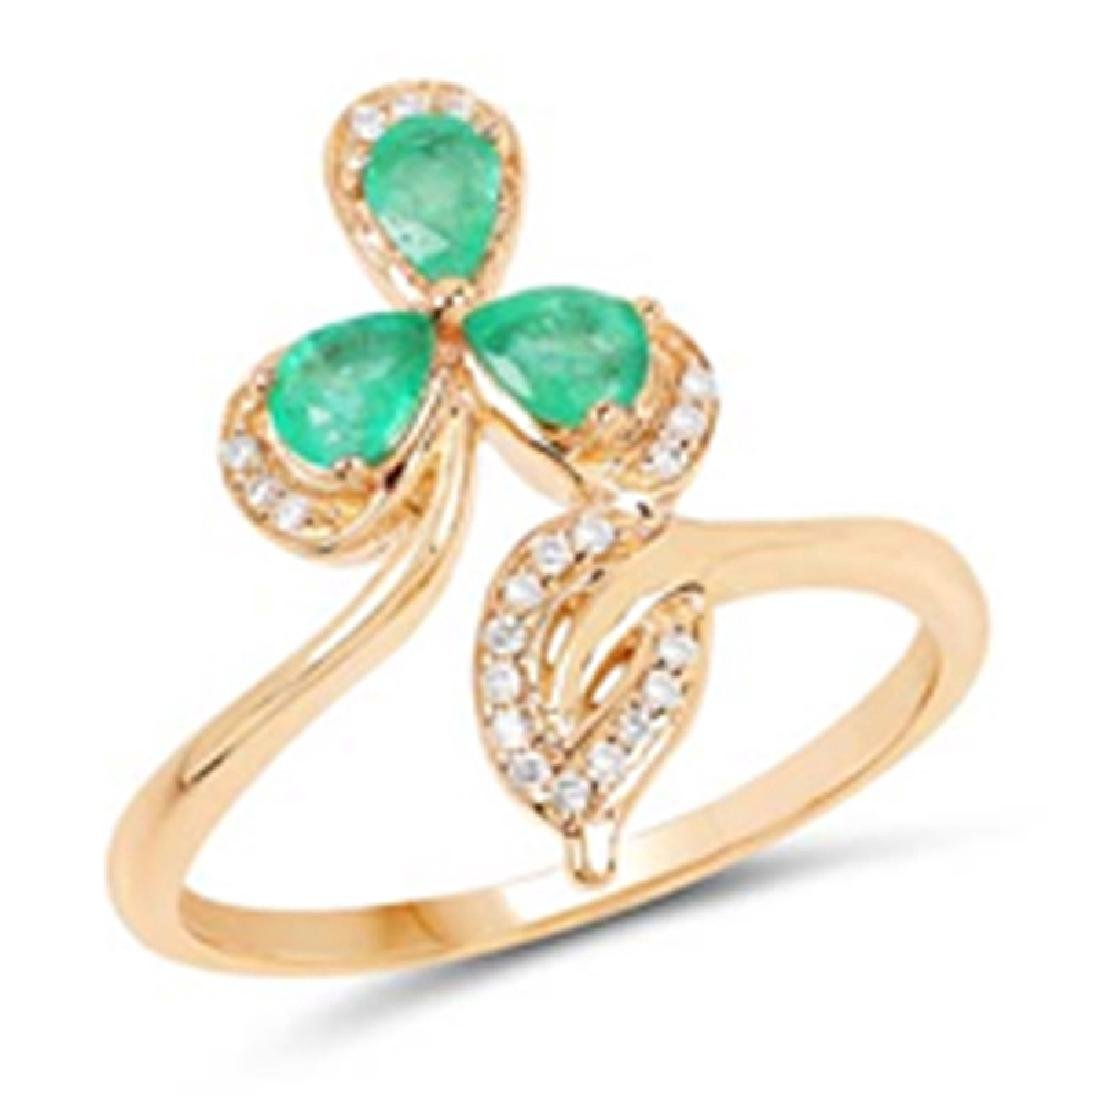 *Fine Jewelry 14KT Gold, 3.52CT Zambian Emerald Pears